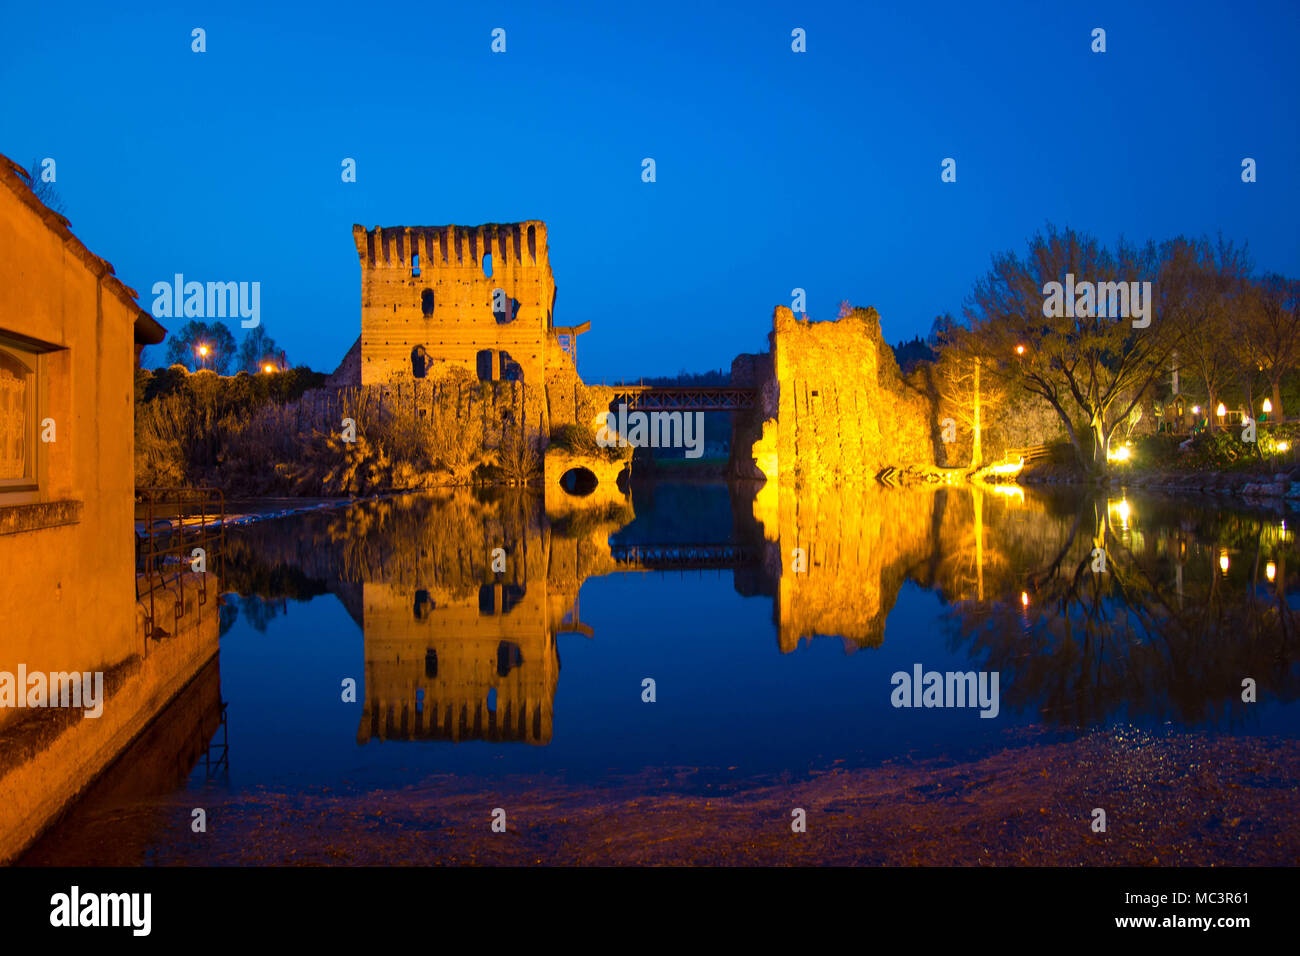 The ruins of Borghetto sul Mincio towers bridge on the river, with the pedestrial lane. Veneto region, Italy. Night view at blue hour. Stock Photo